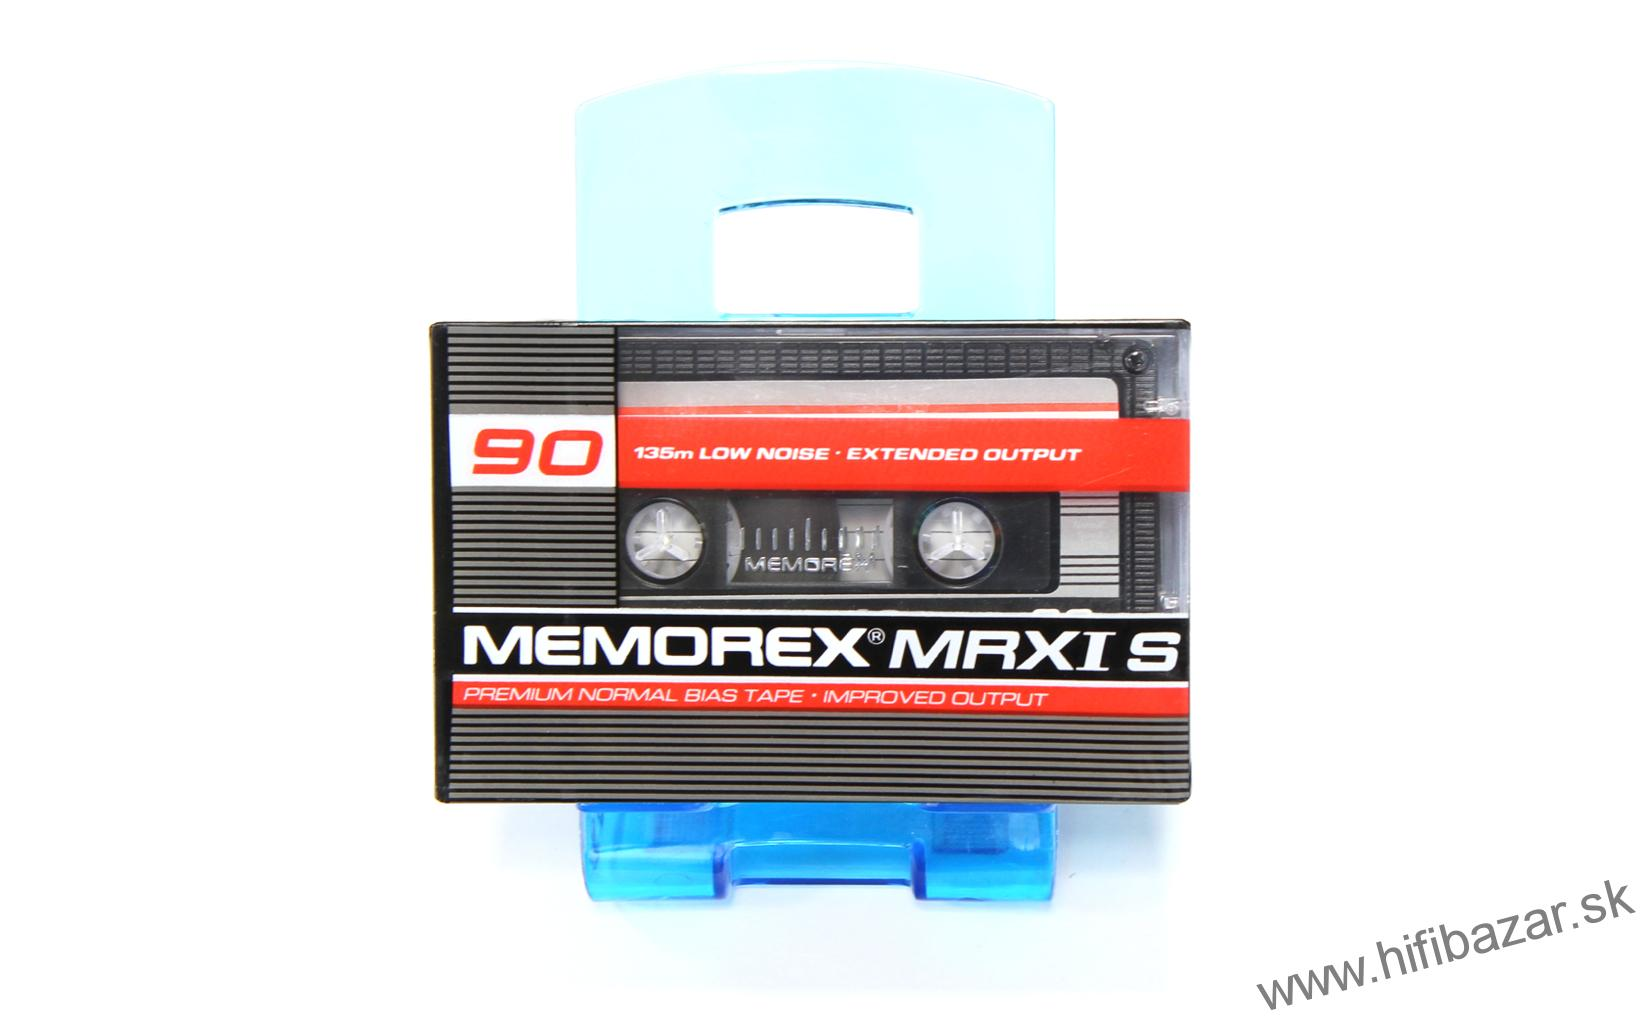 MEMOREX MRXI-S90 Position Normal